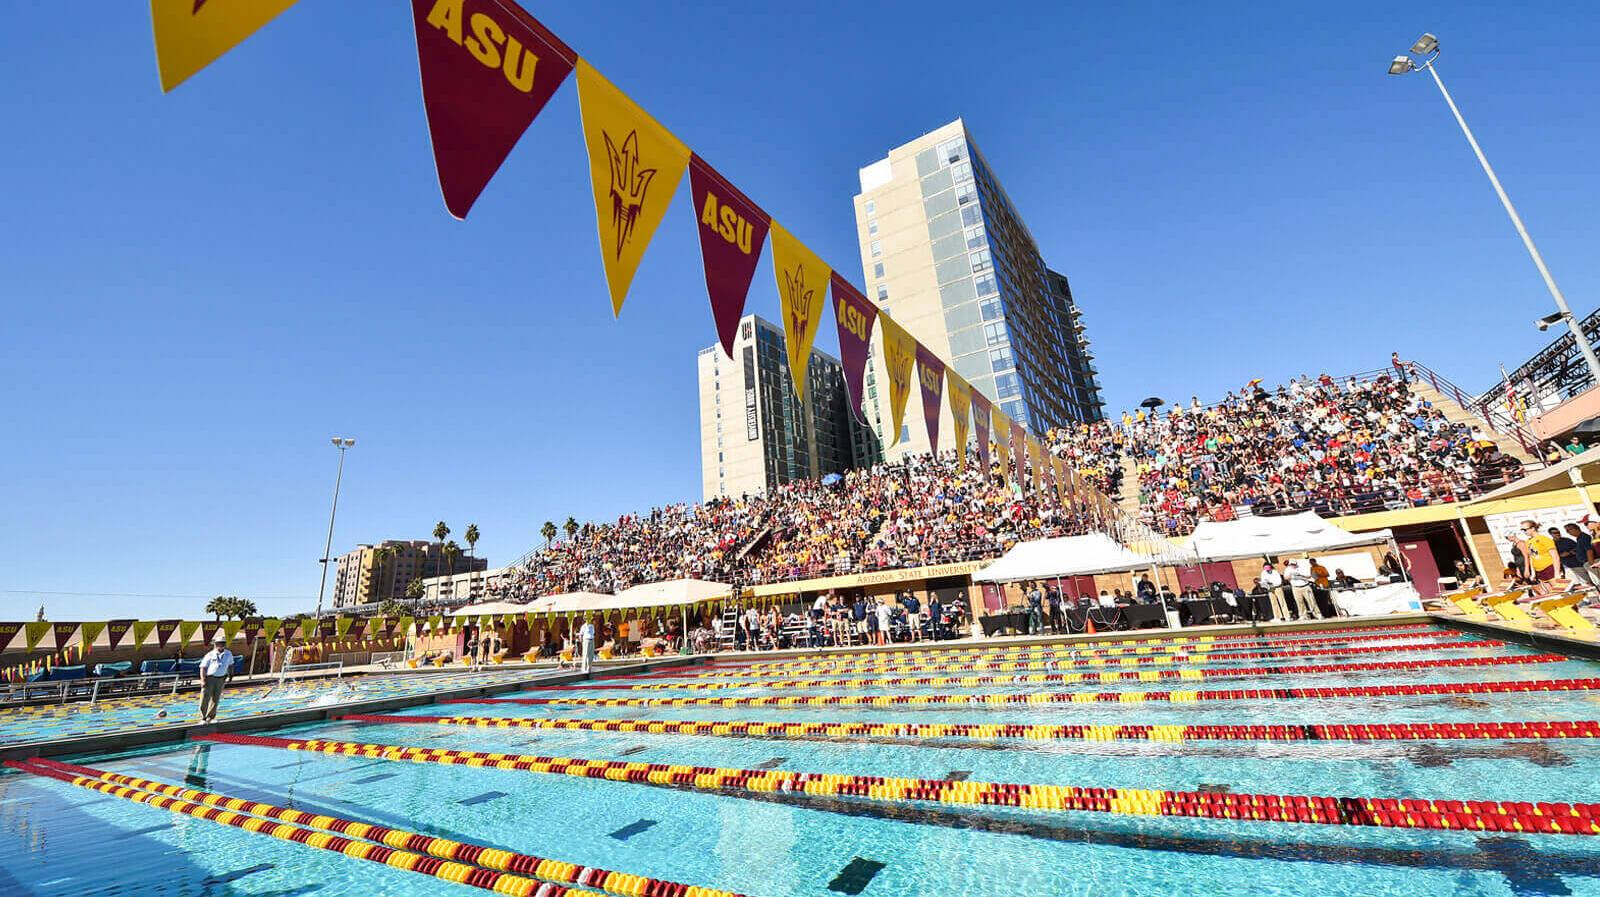 Celebratory ASU flags hang over the pool at Plummer Aquatic Center